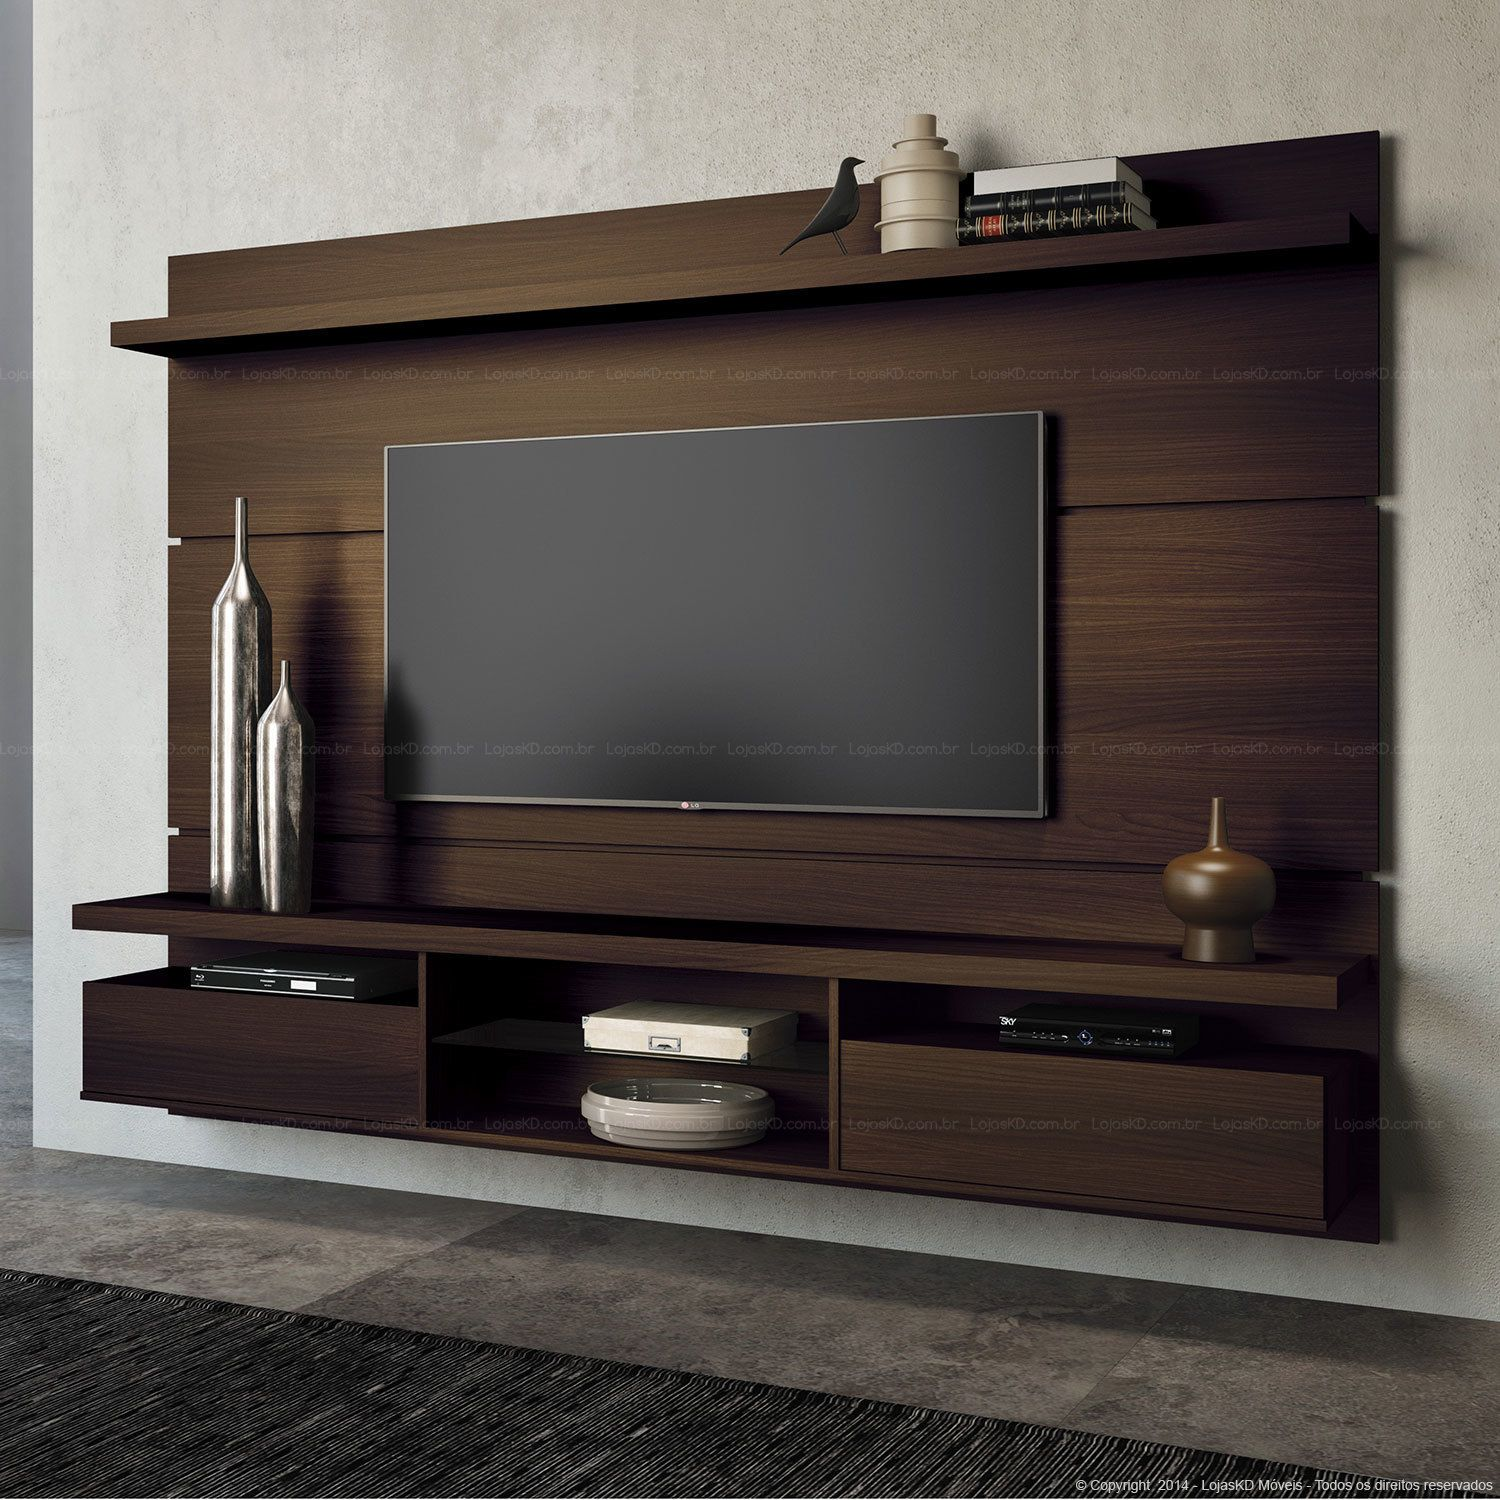 15 Modern Tv Wall Mount Ideas For Living Room Meuble Tv Tv Et  # Modeles De Meubles Home Cinema Et Bibliotheque